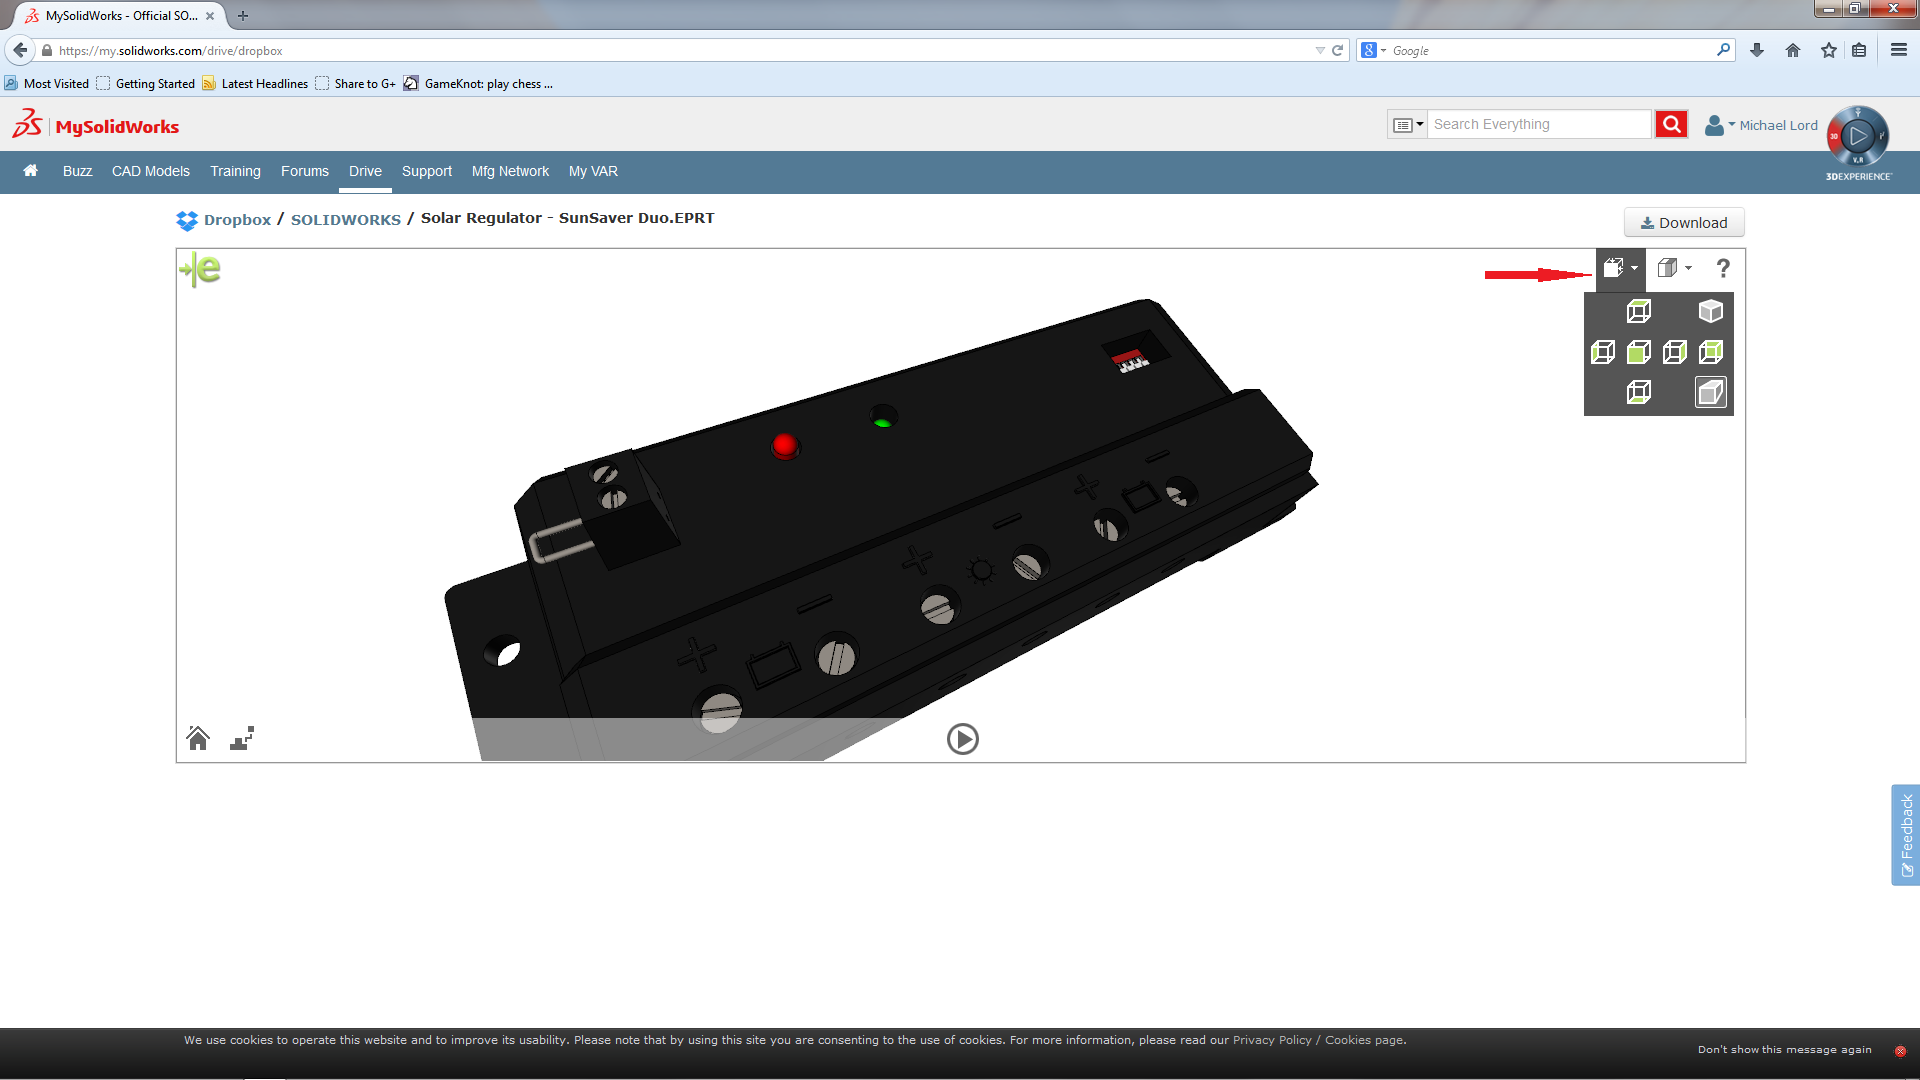 My SolidWorks Drive Incorporates eDrawings – Dropbox